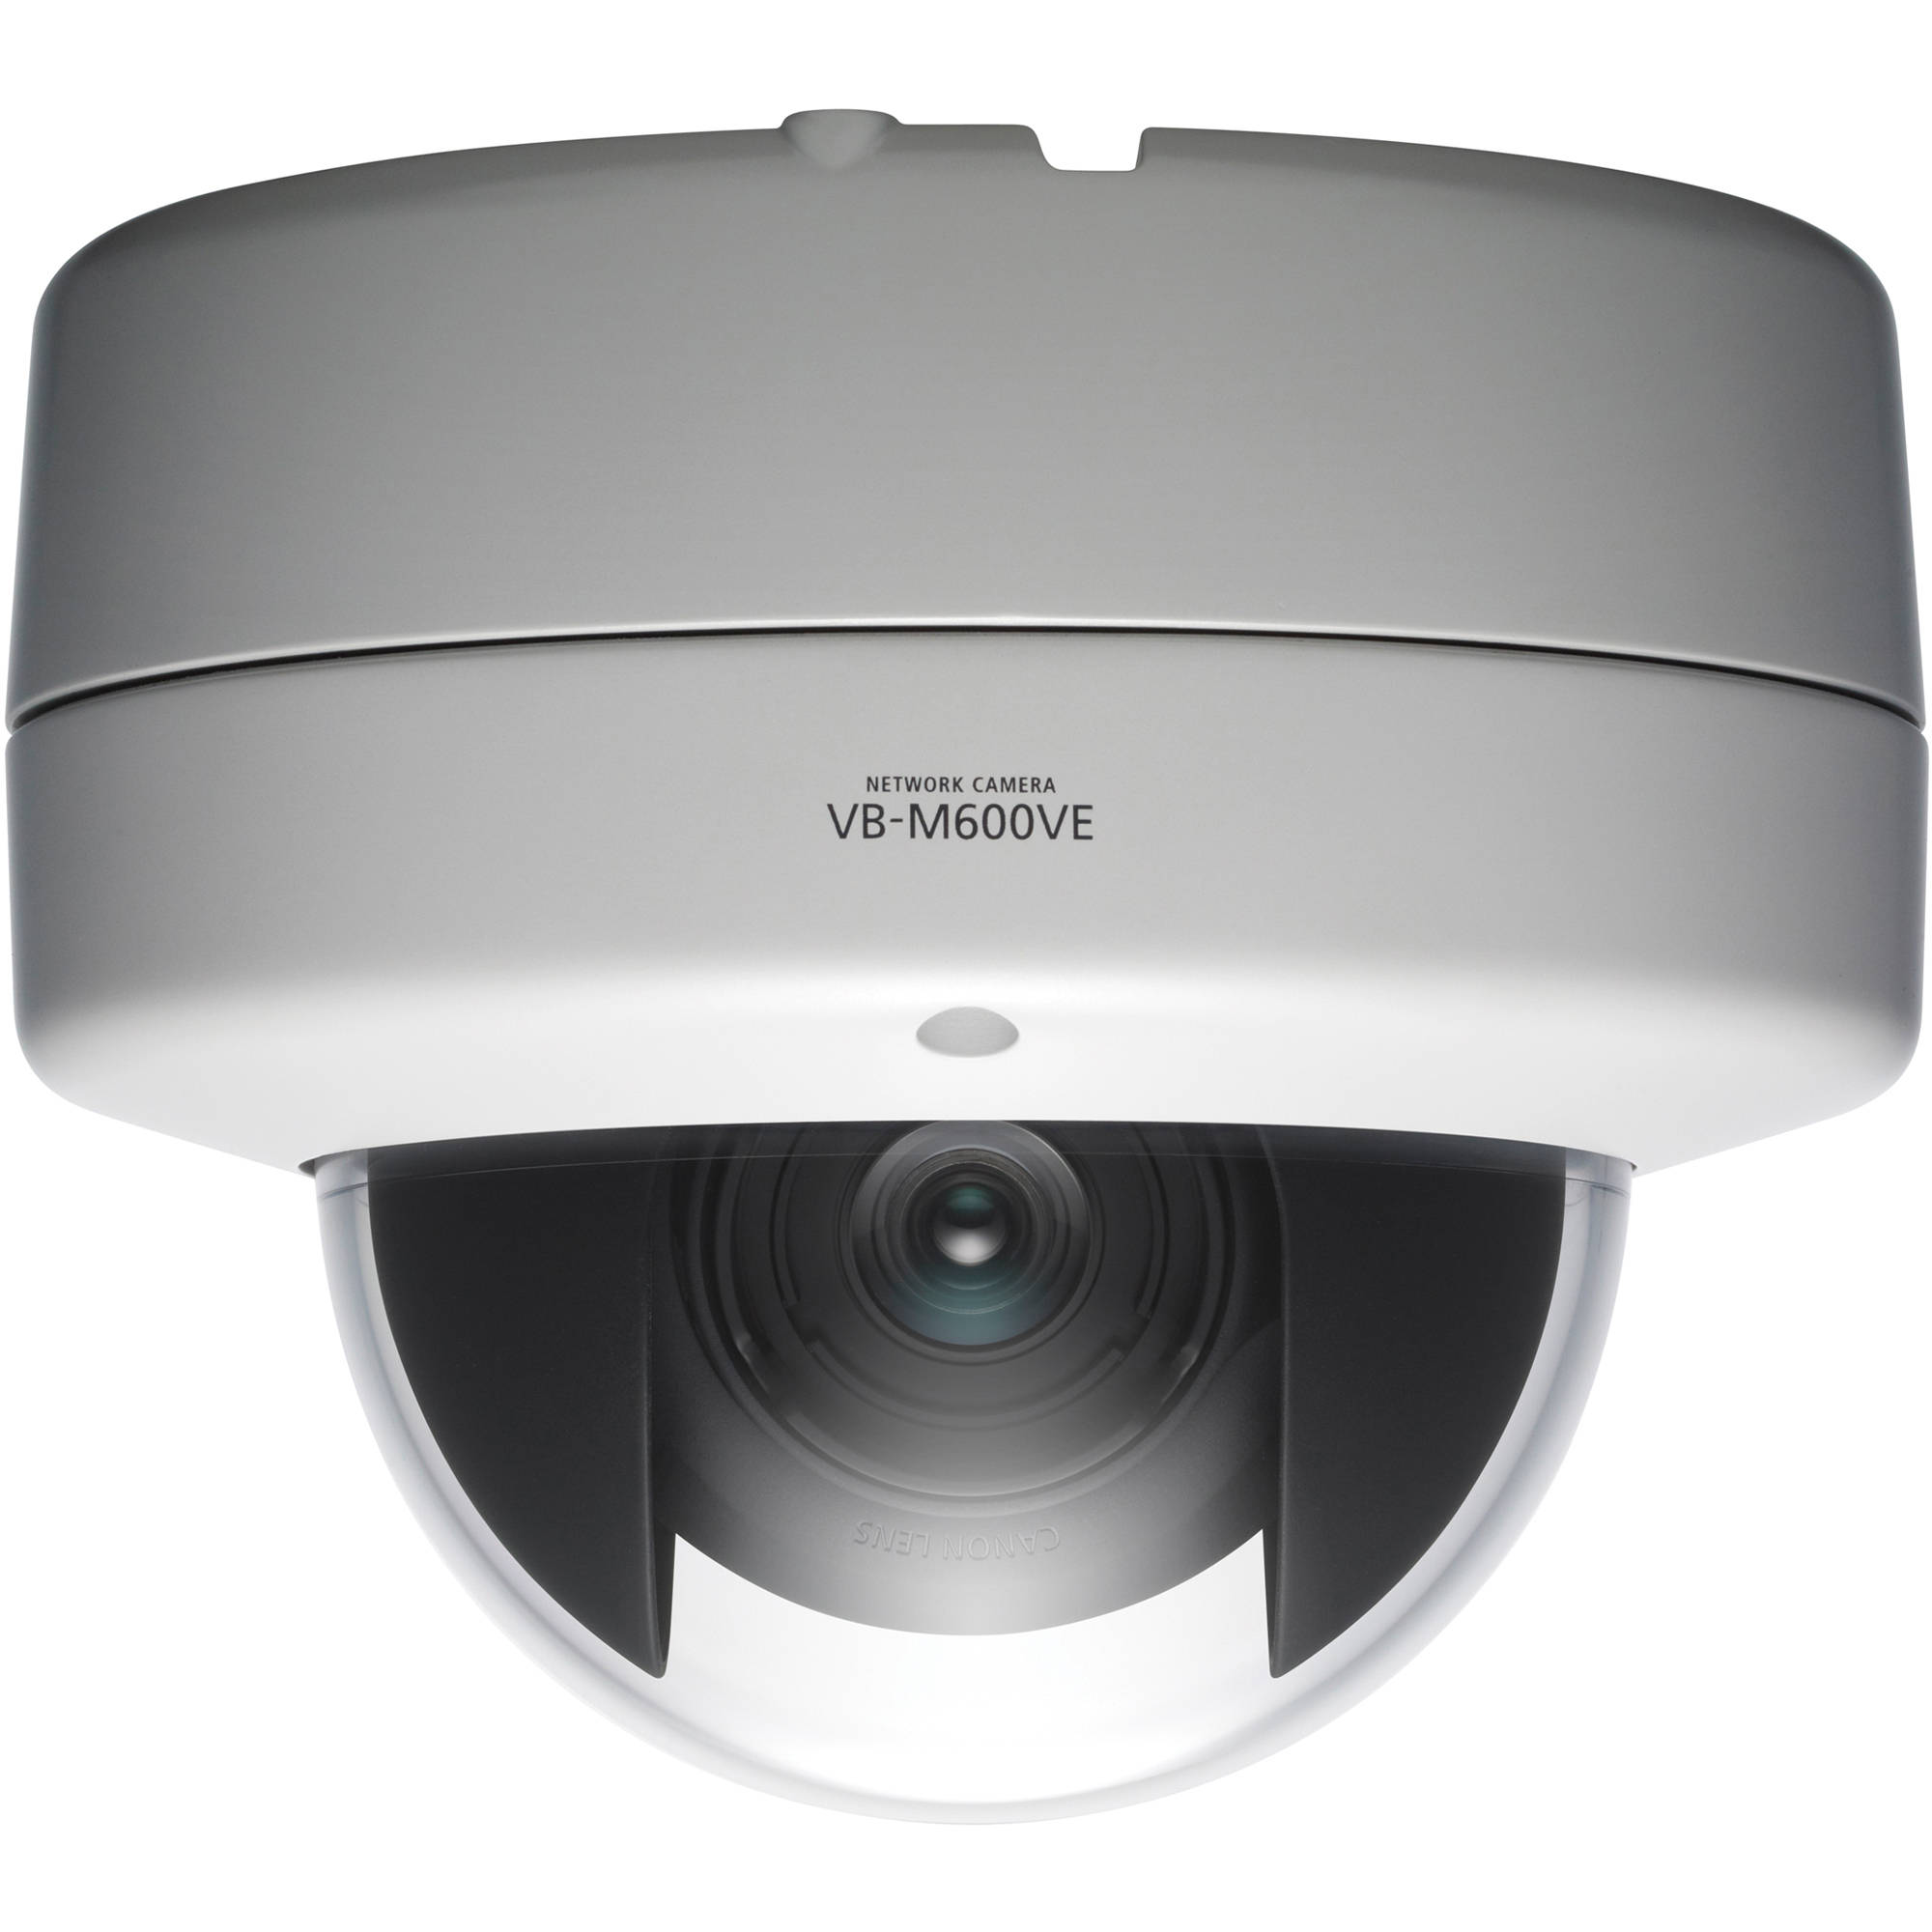 Canon VB-M600VE Network Camera Windows 8 X64 Driver Download